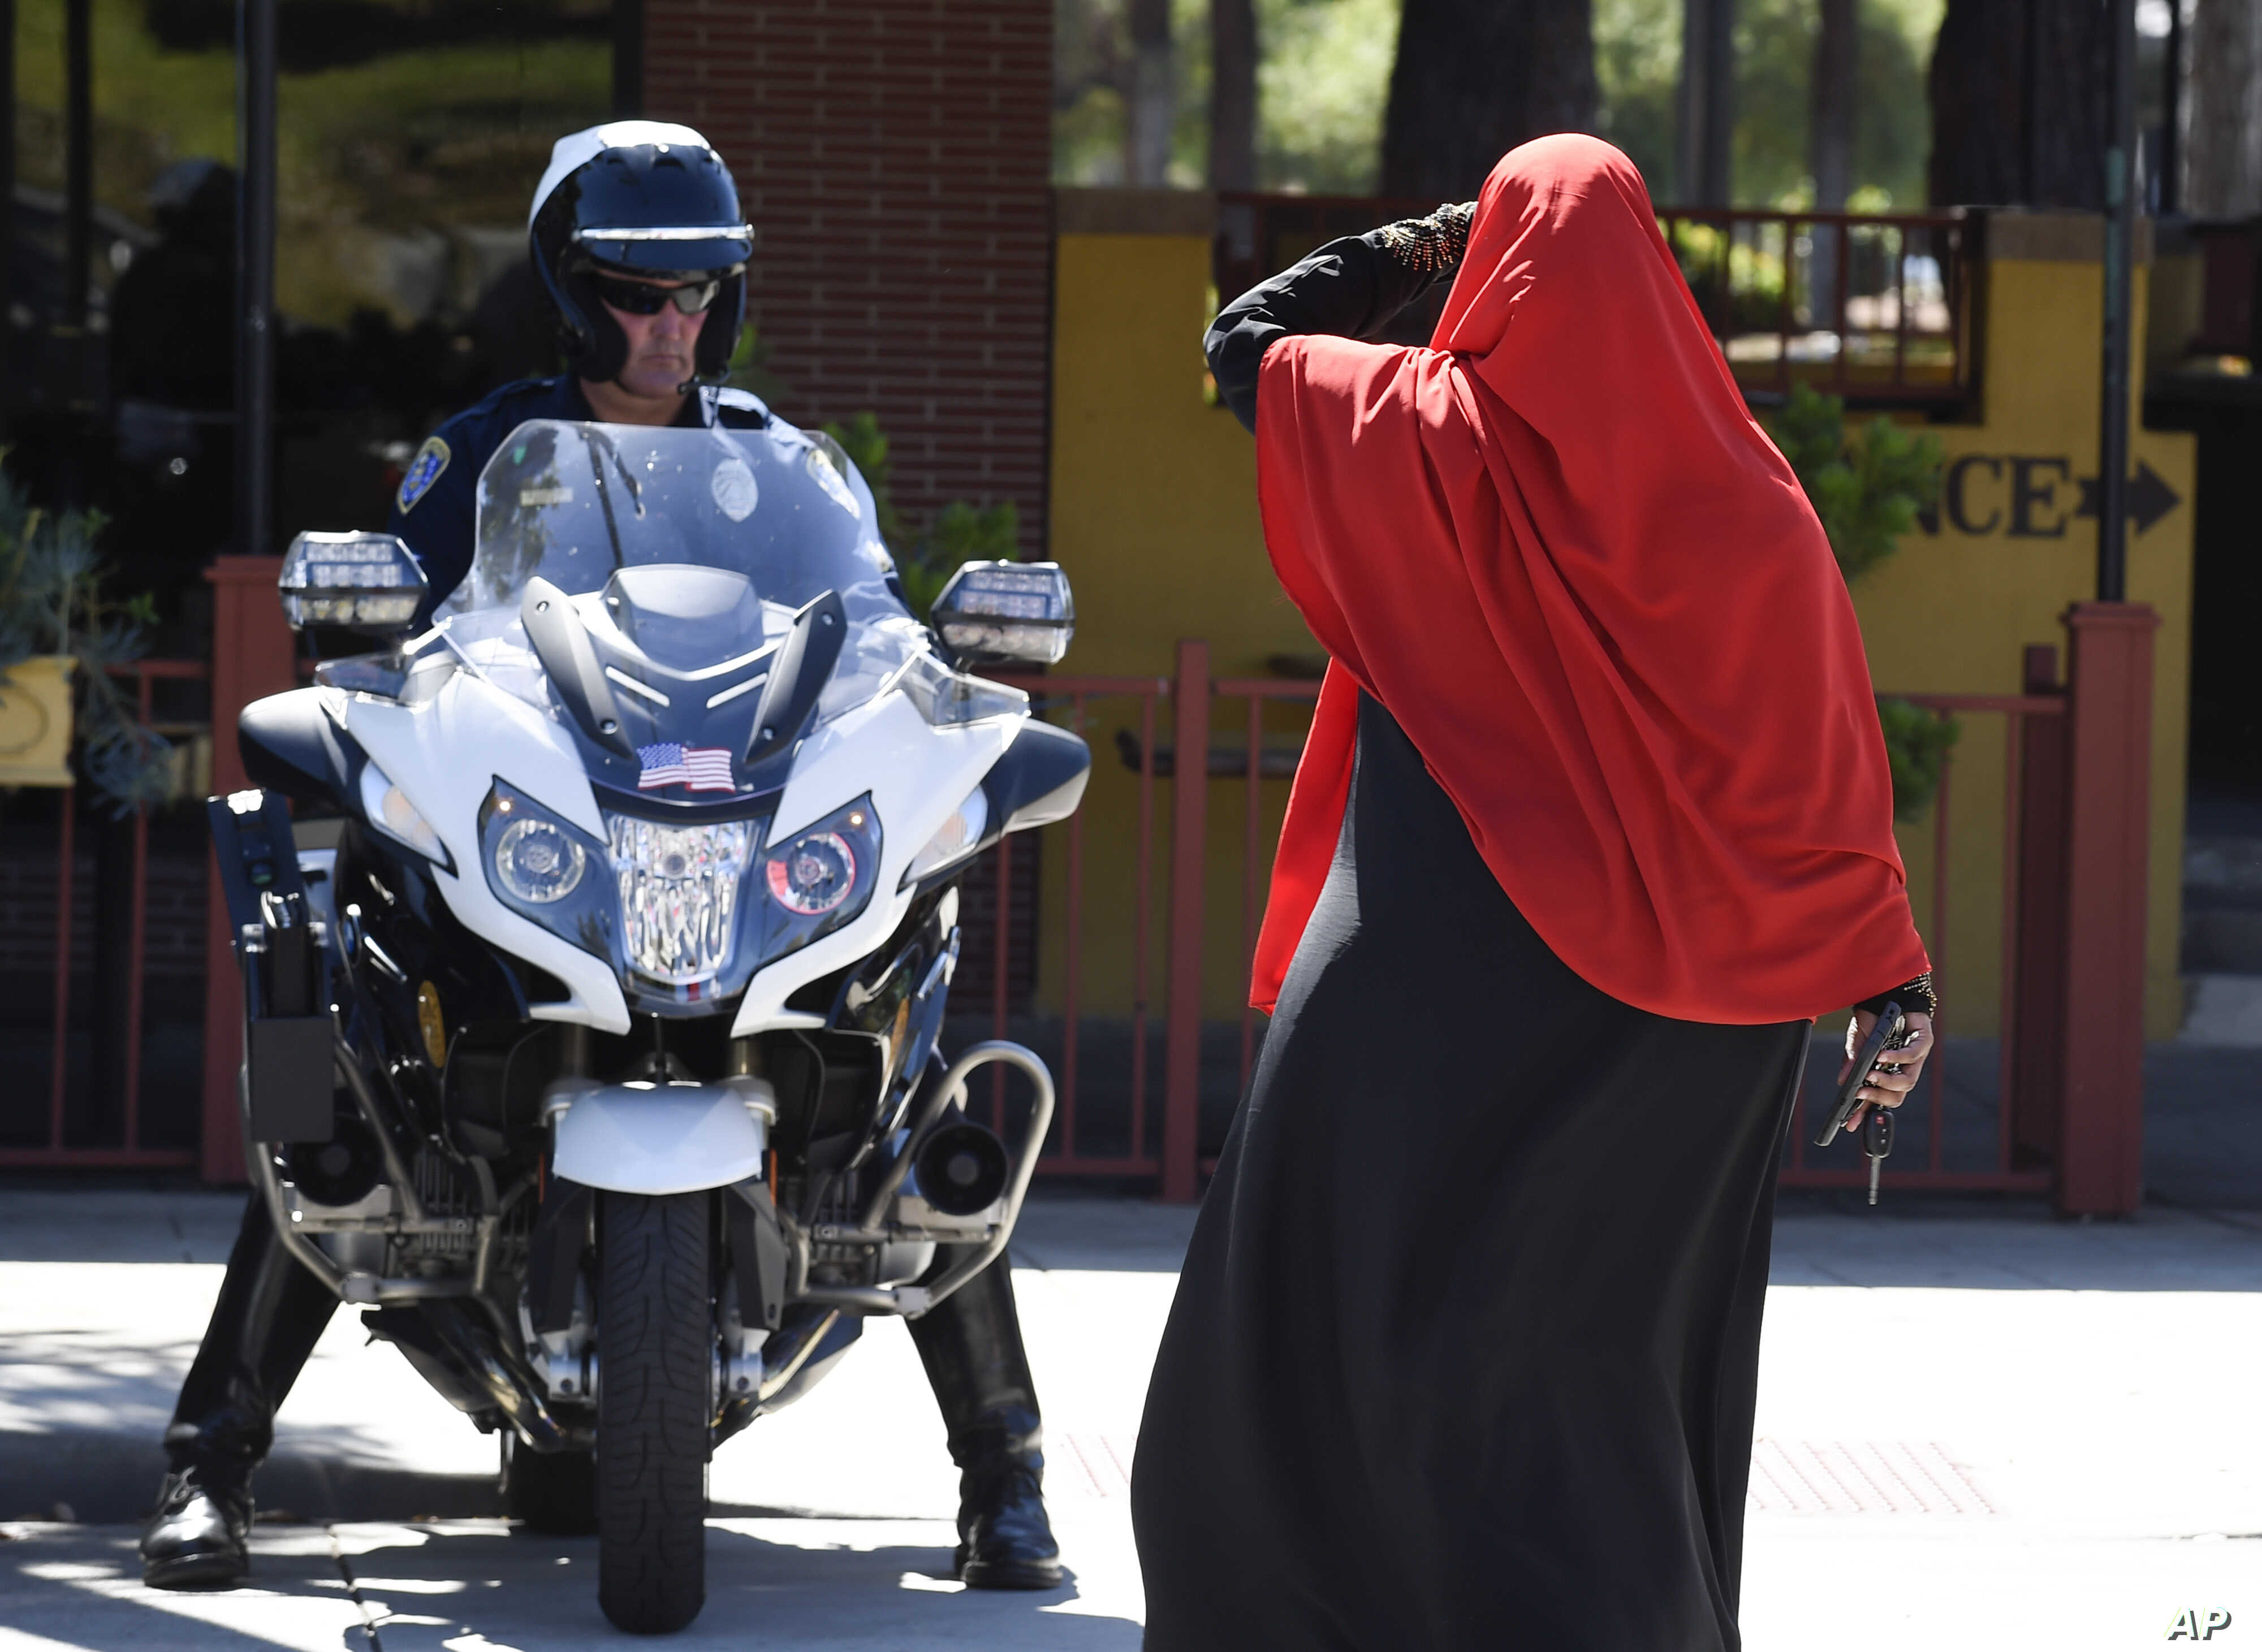 FILE - A Muslim woman leaves a protest as a San Diego police officer looks on after protesters marched through El Cajon, Calif., Oct. 1, 2016, in reaction to the fatal police shooting of an unarmed black man, Alfred Olango  Olango.